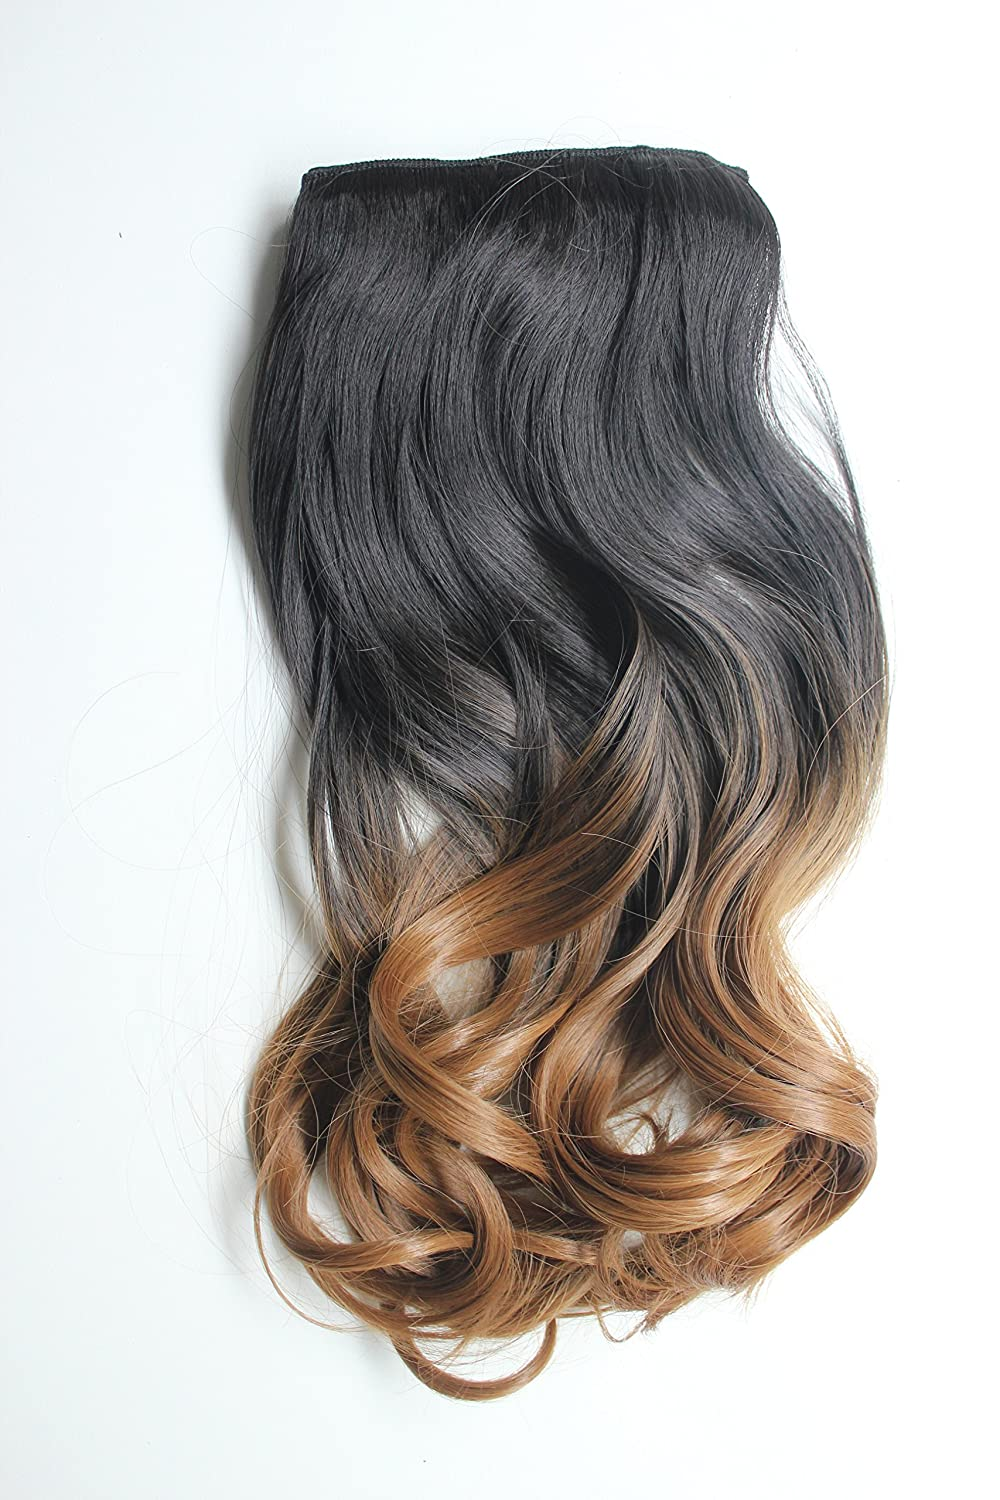 17 one piece full head clip in hair extensions ombre wavy curly (Light brown to sandy blonde) Jimmystar